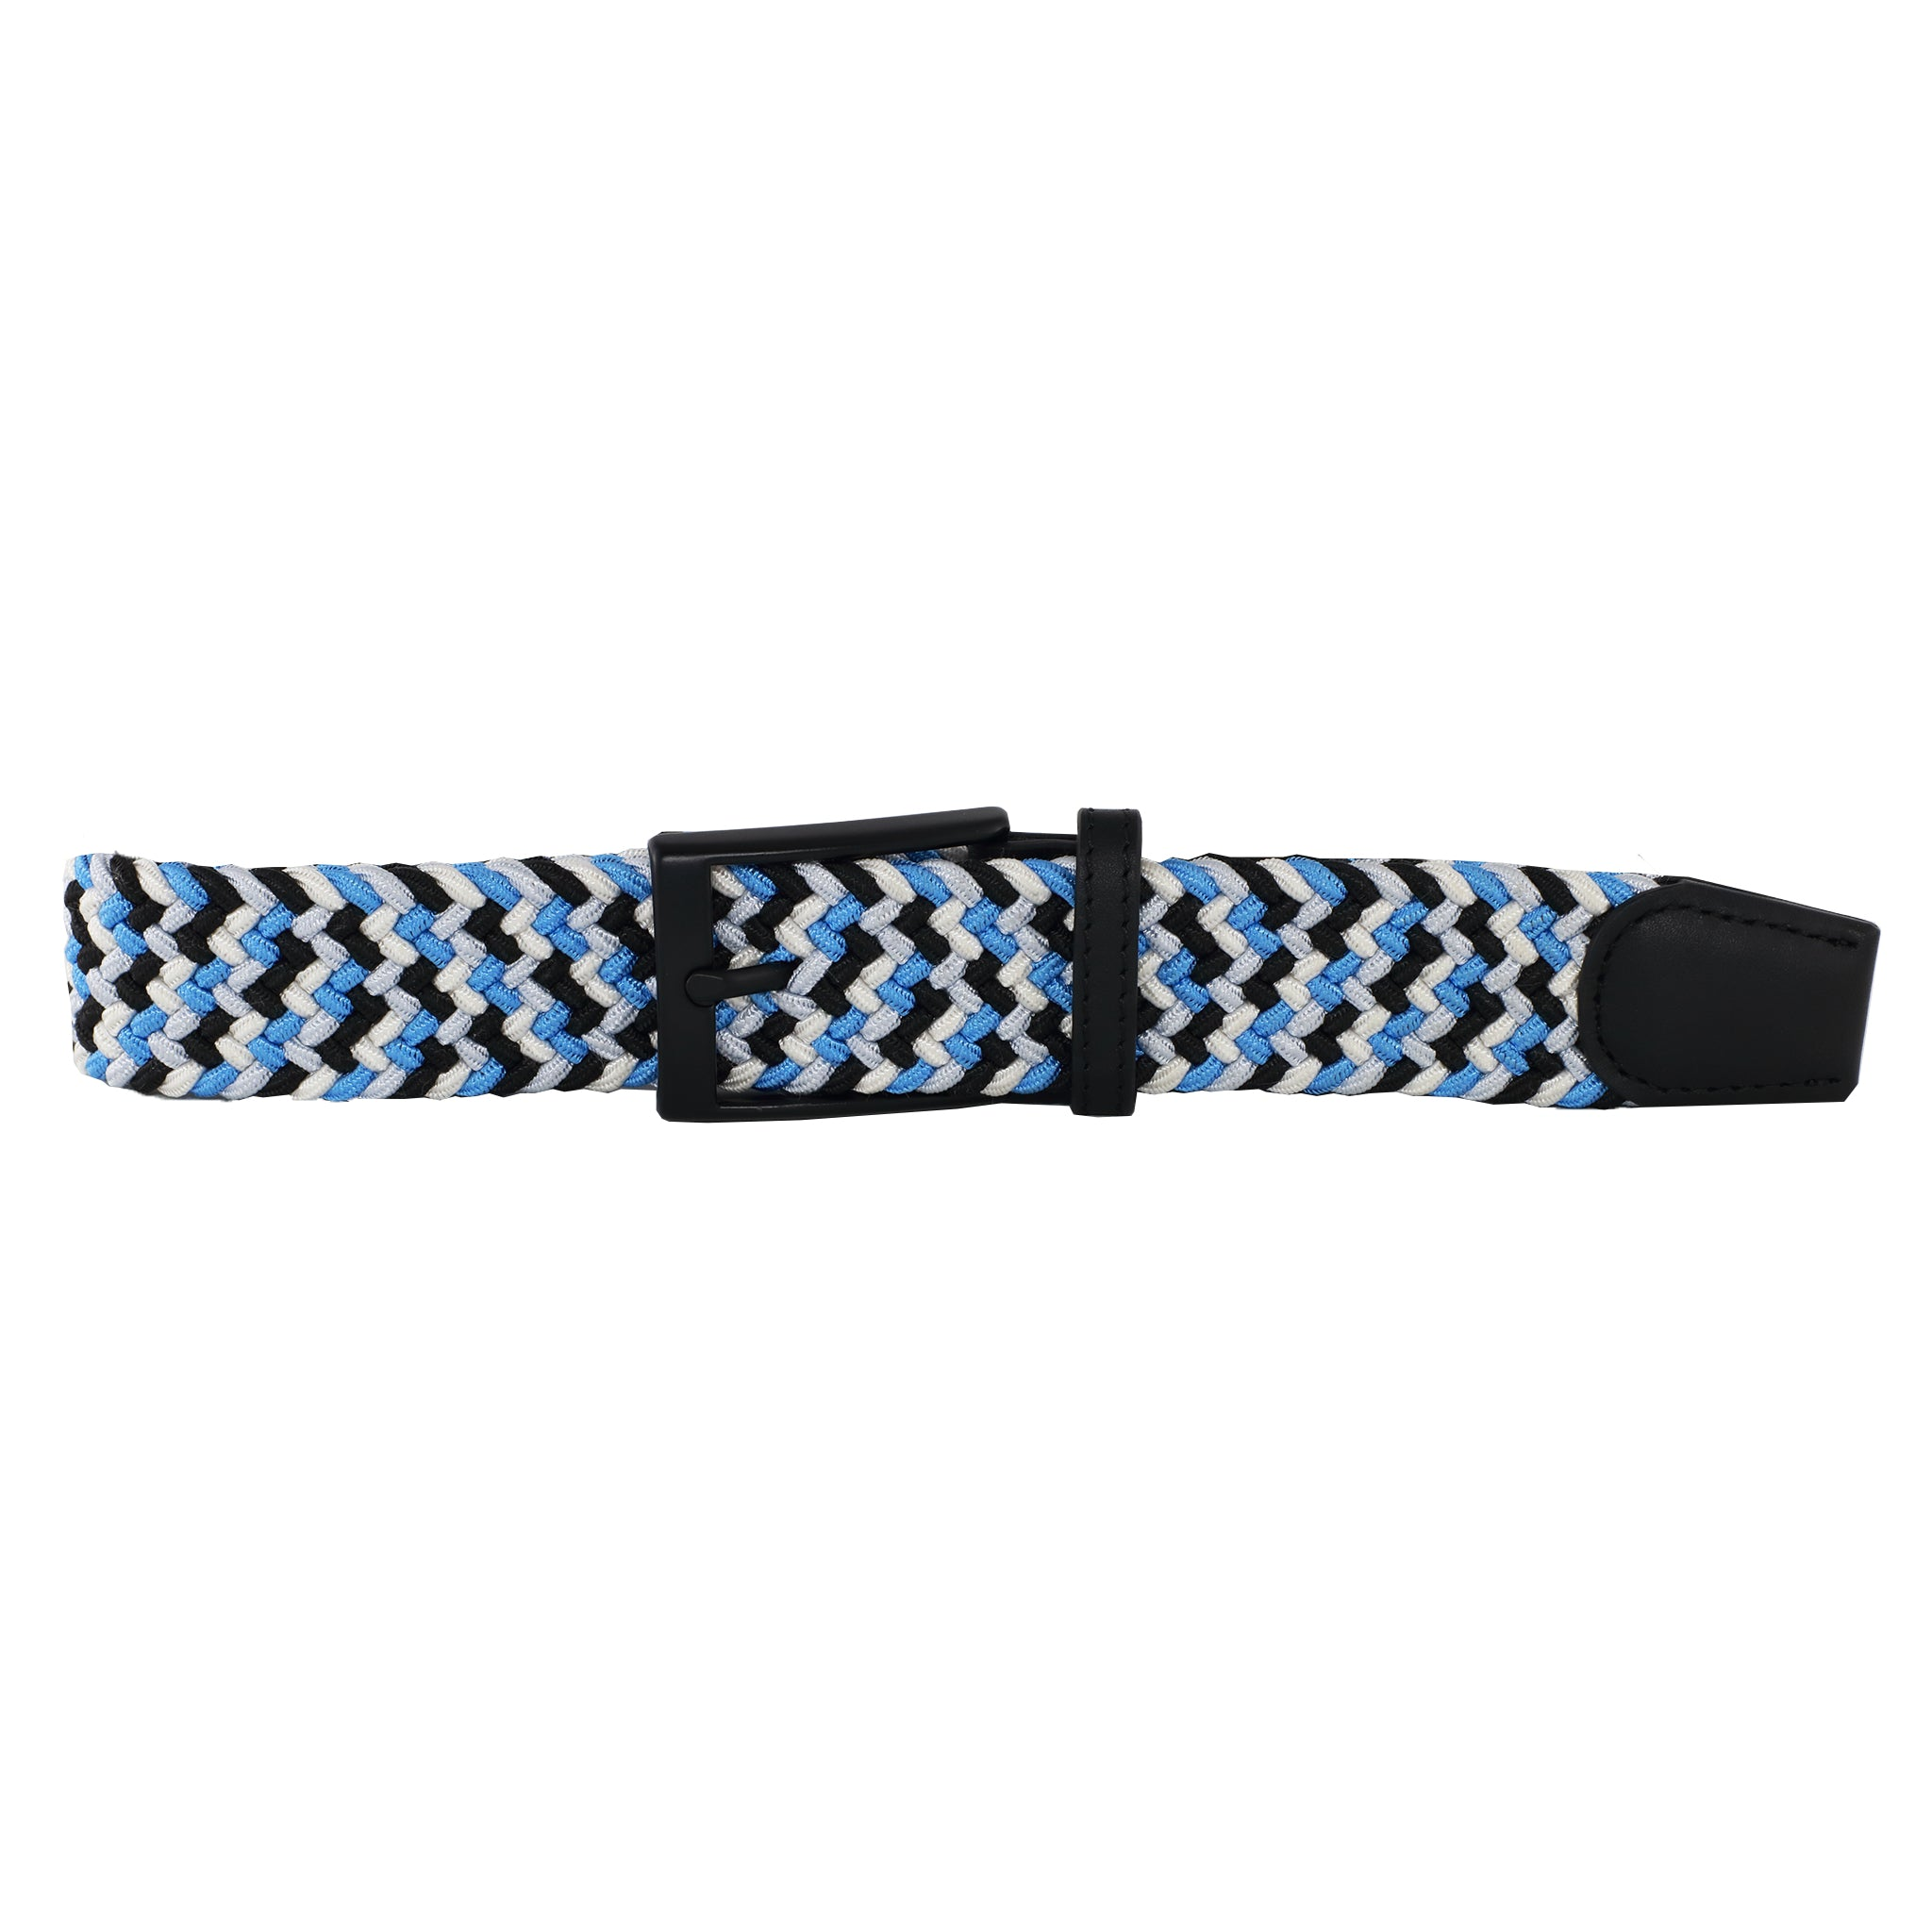 Black, White, Neon Blue, & Silver Elastic Belt